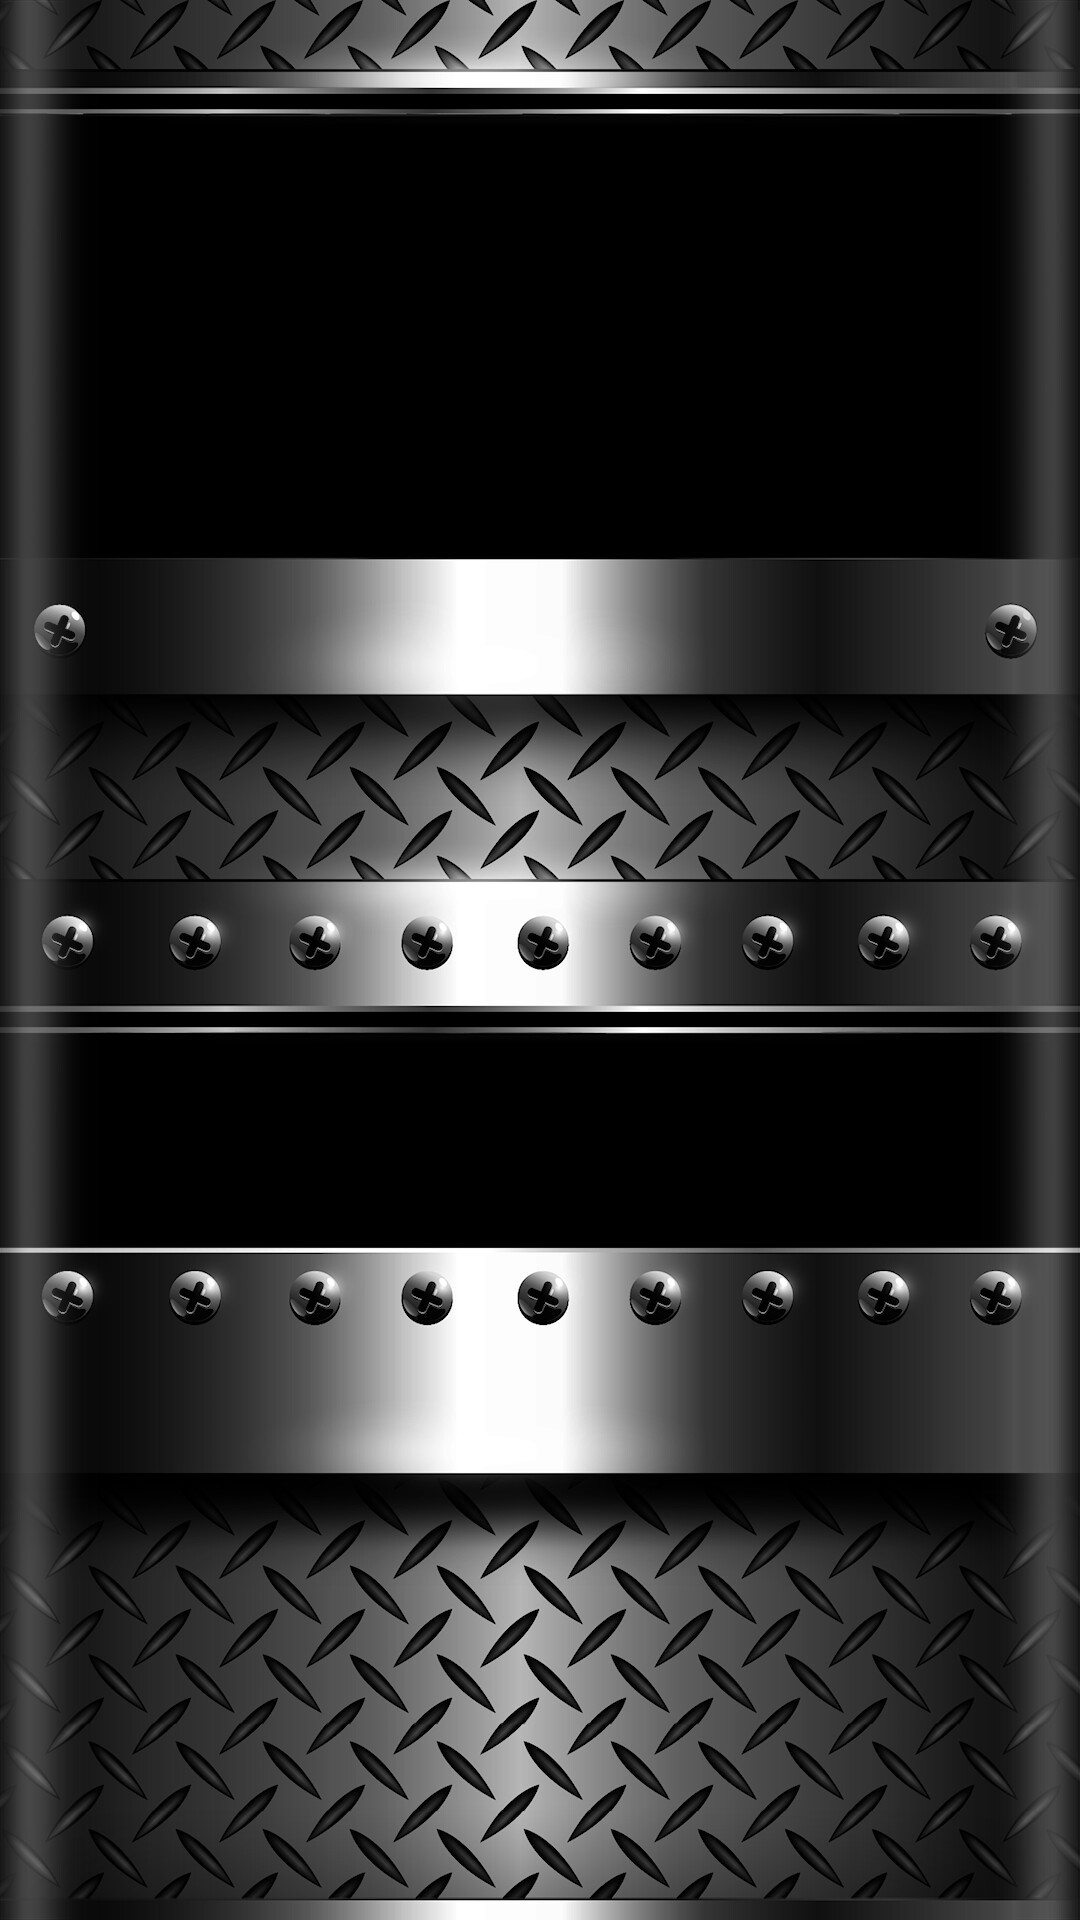 Res: 1080x1920, Sleek Chrome and Black Bulleted Wallpaper